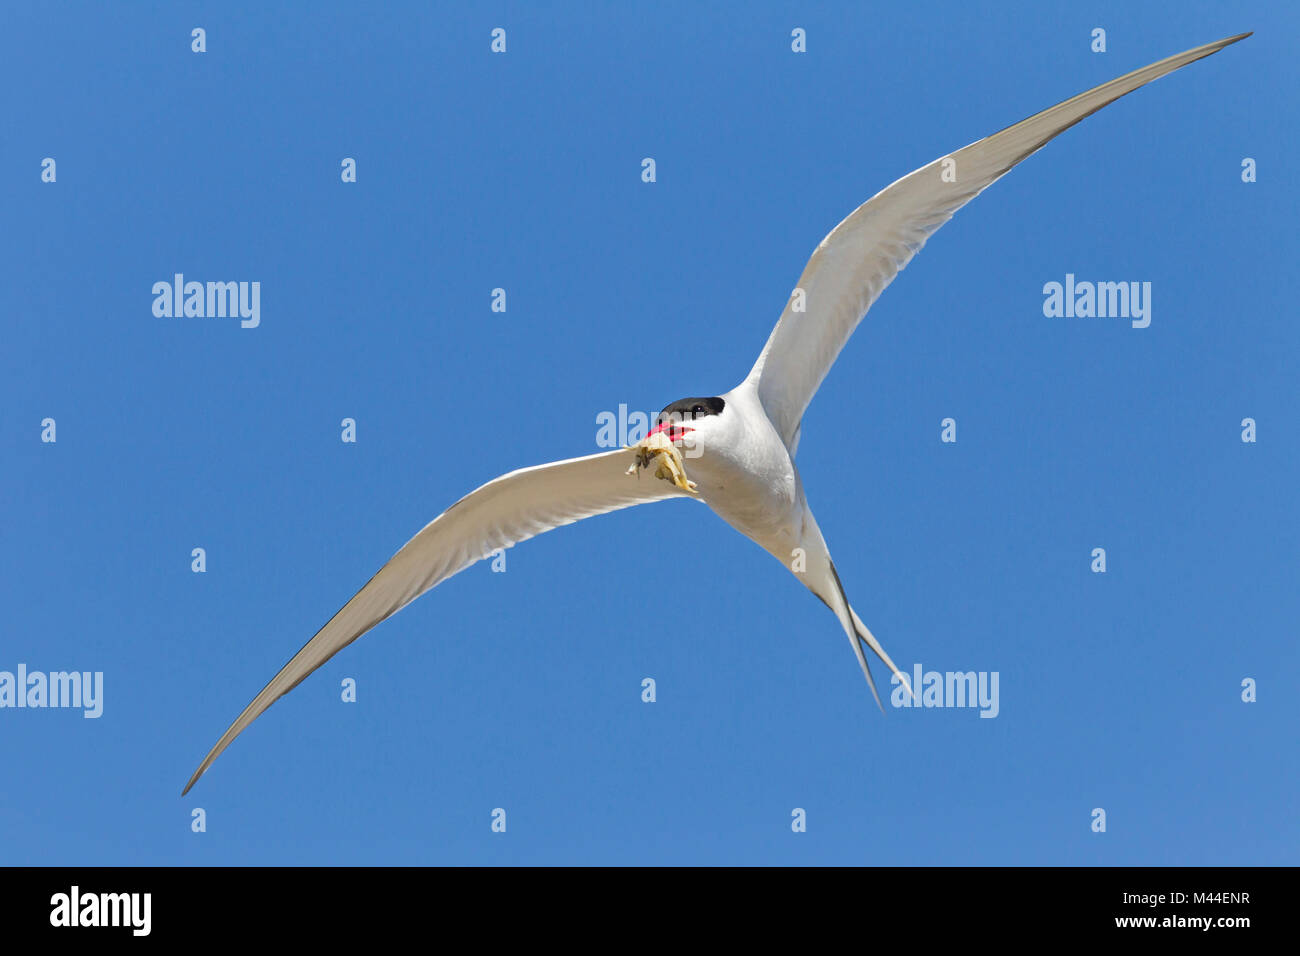 Arctic Tern (Sterna paradisaea), adult in flight with Shore Crab in its bill. Germany - Stock Image